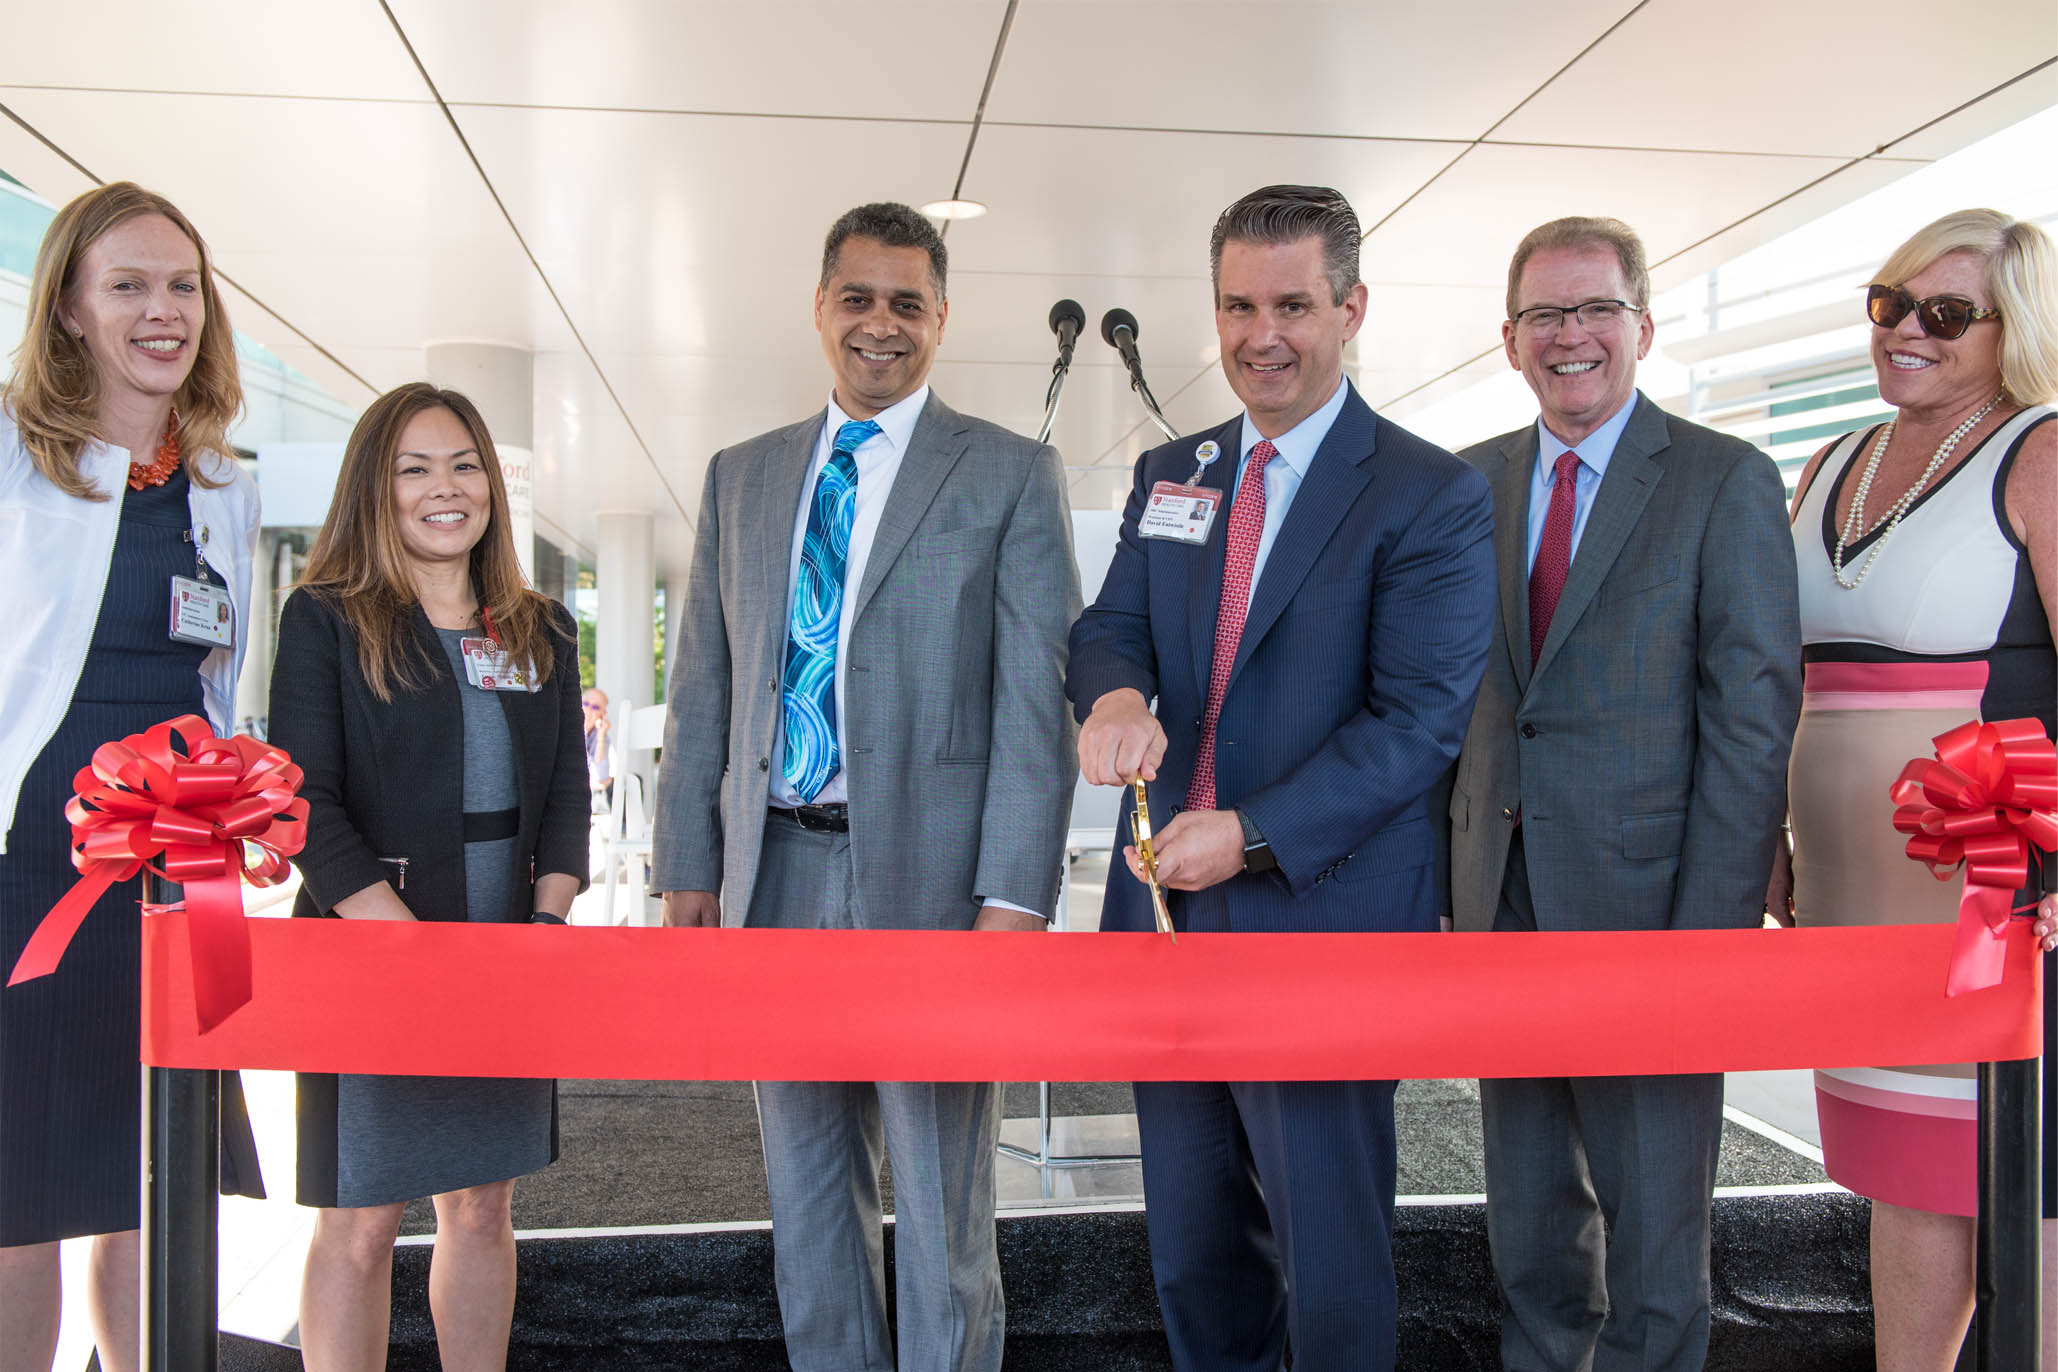 Stanford's new outpatient building in Redwood City